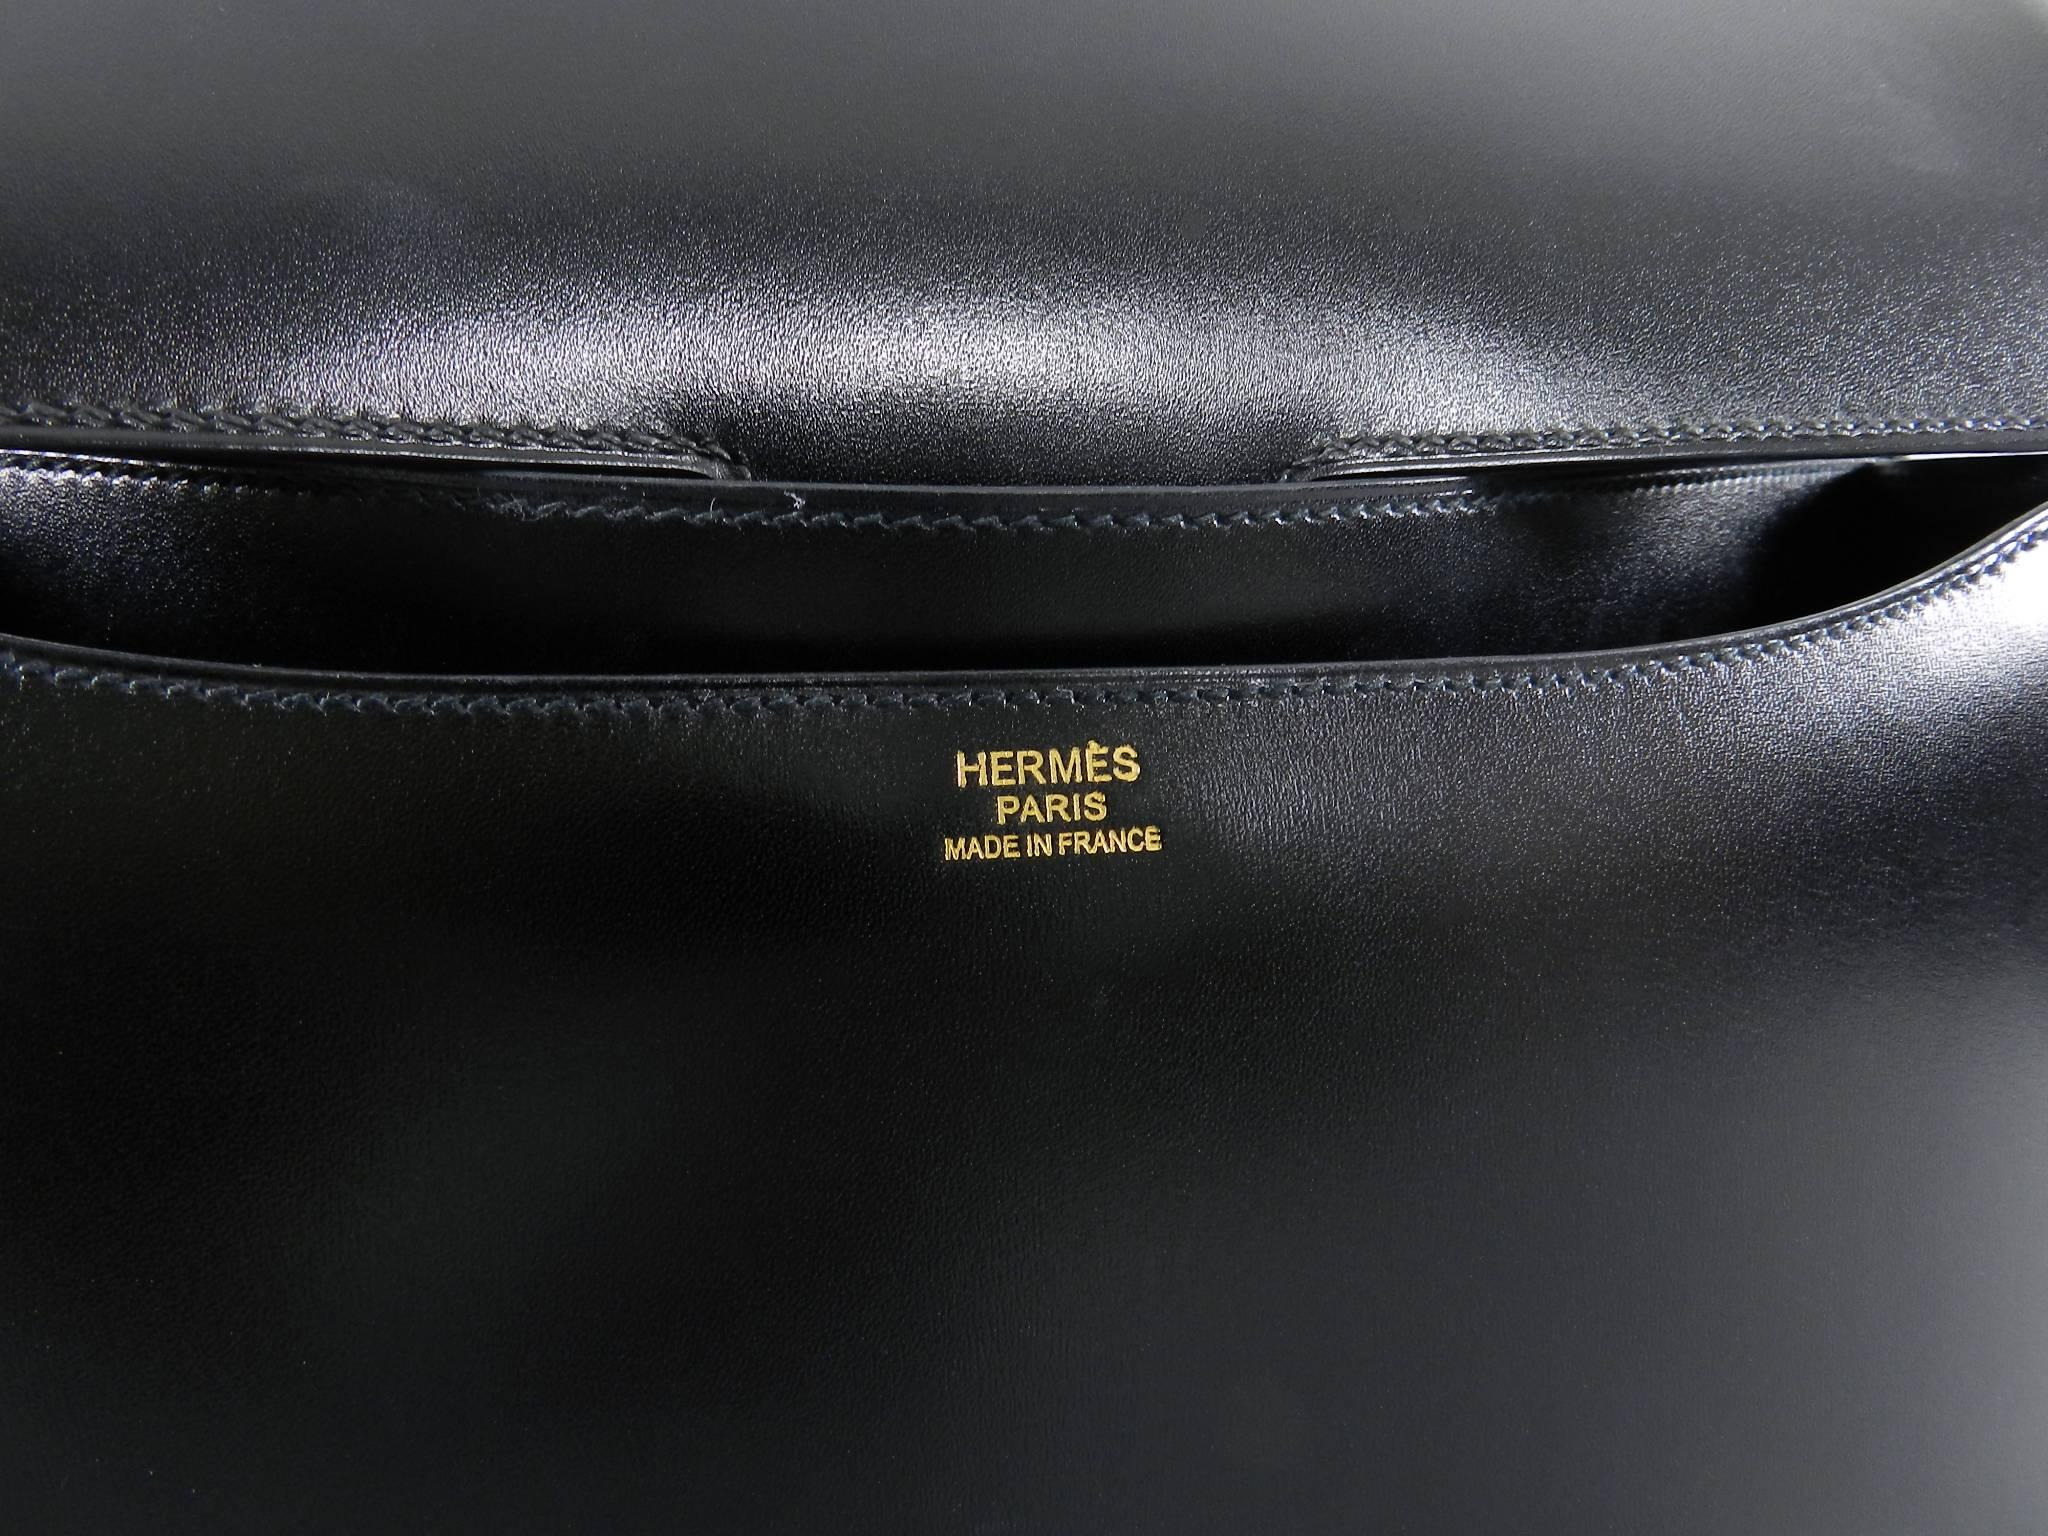 df40846573f1 Hermes Limited Edition Constance Cartable Black Box Leather with Gold  Hardware at 1stdibs